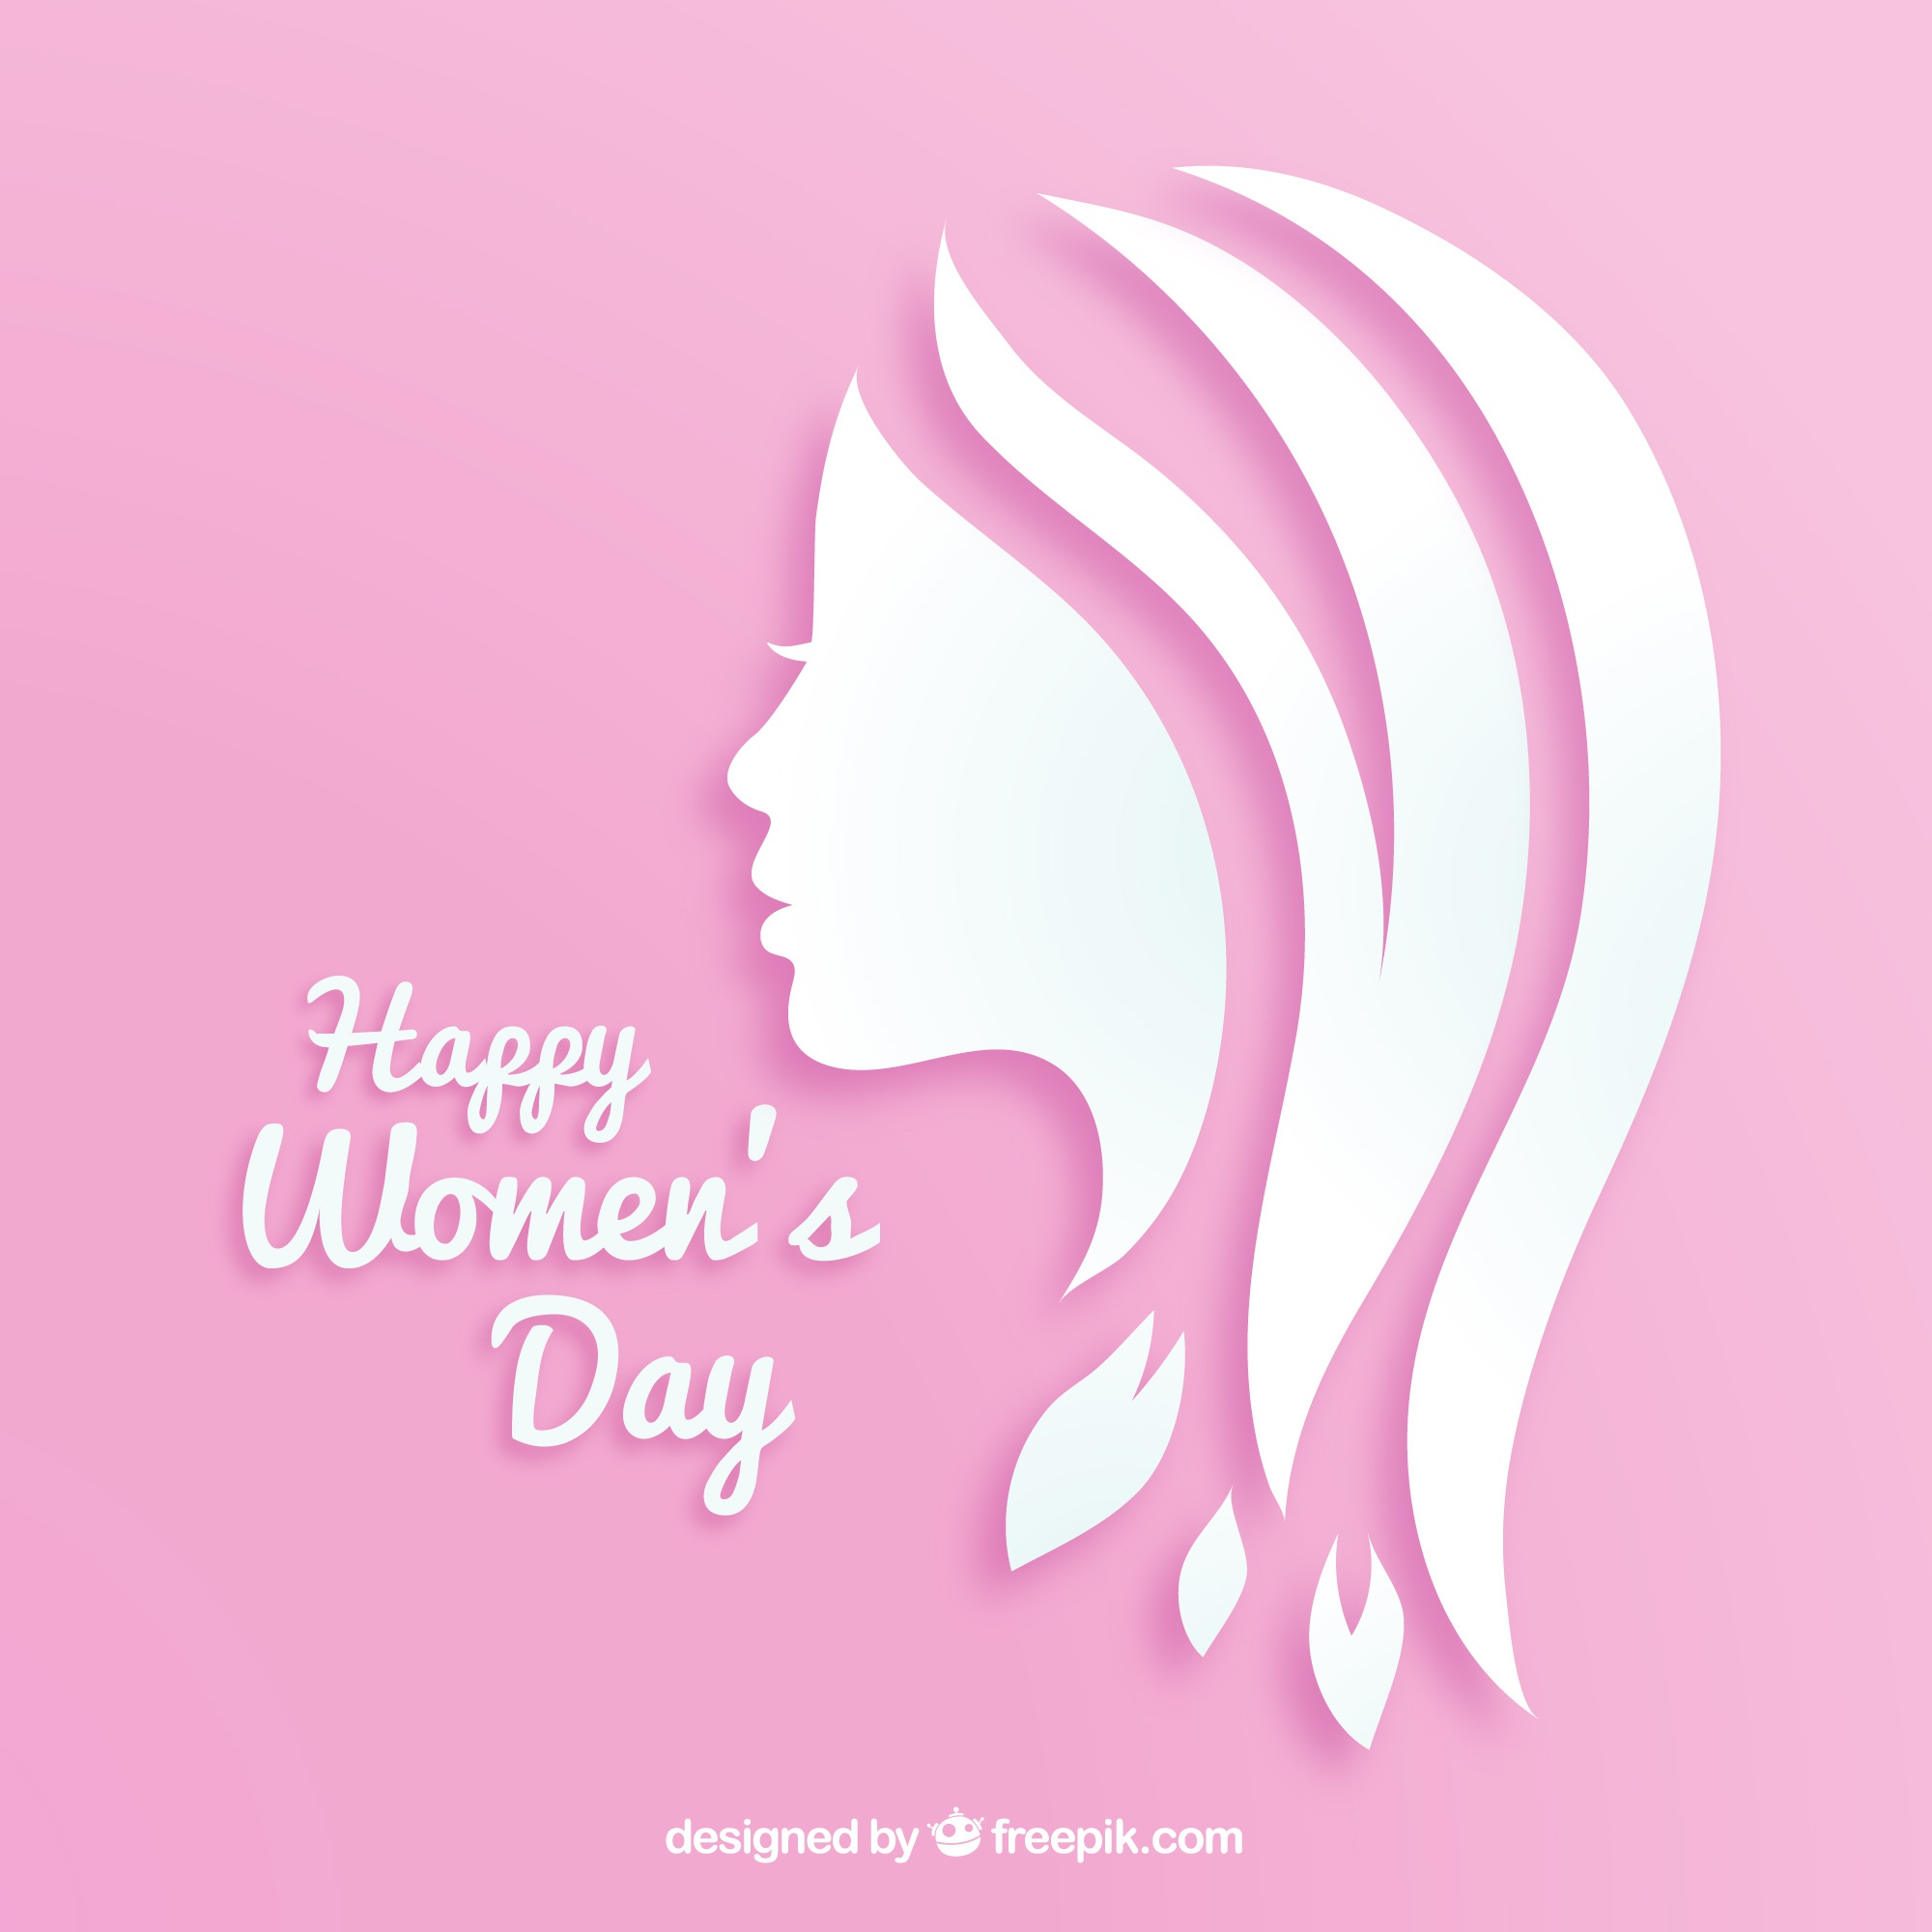 Women's day background in paper